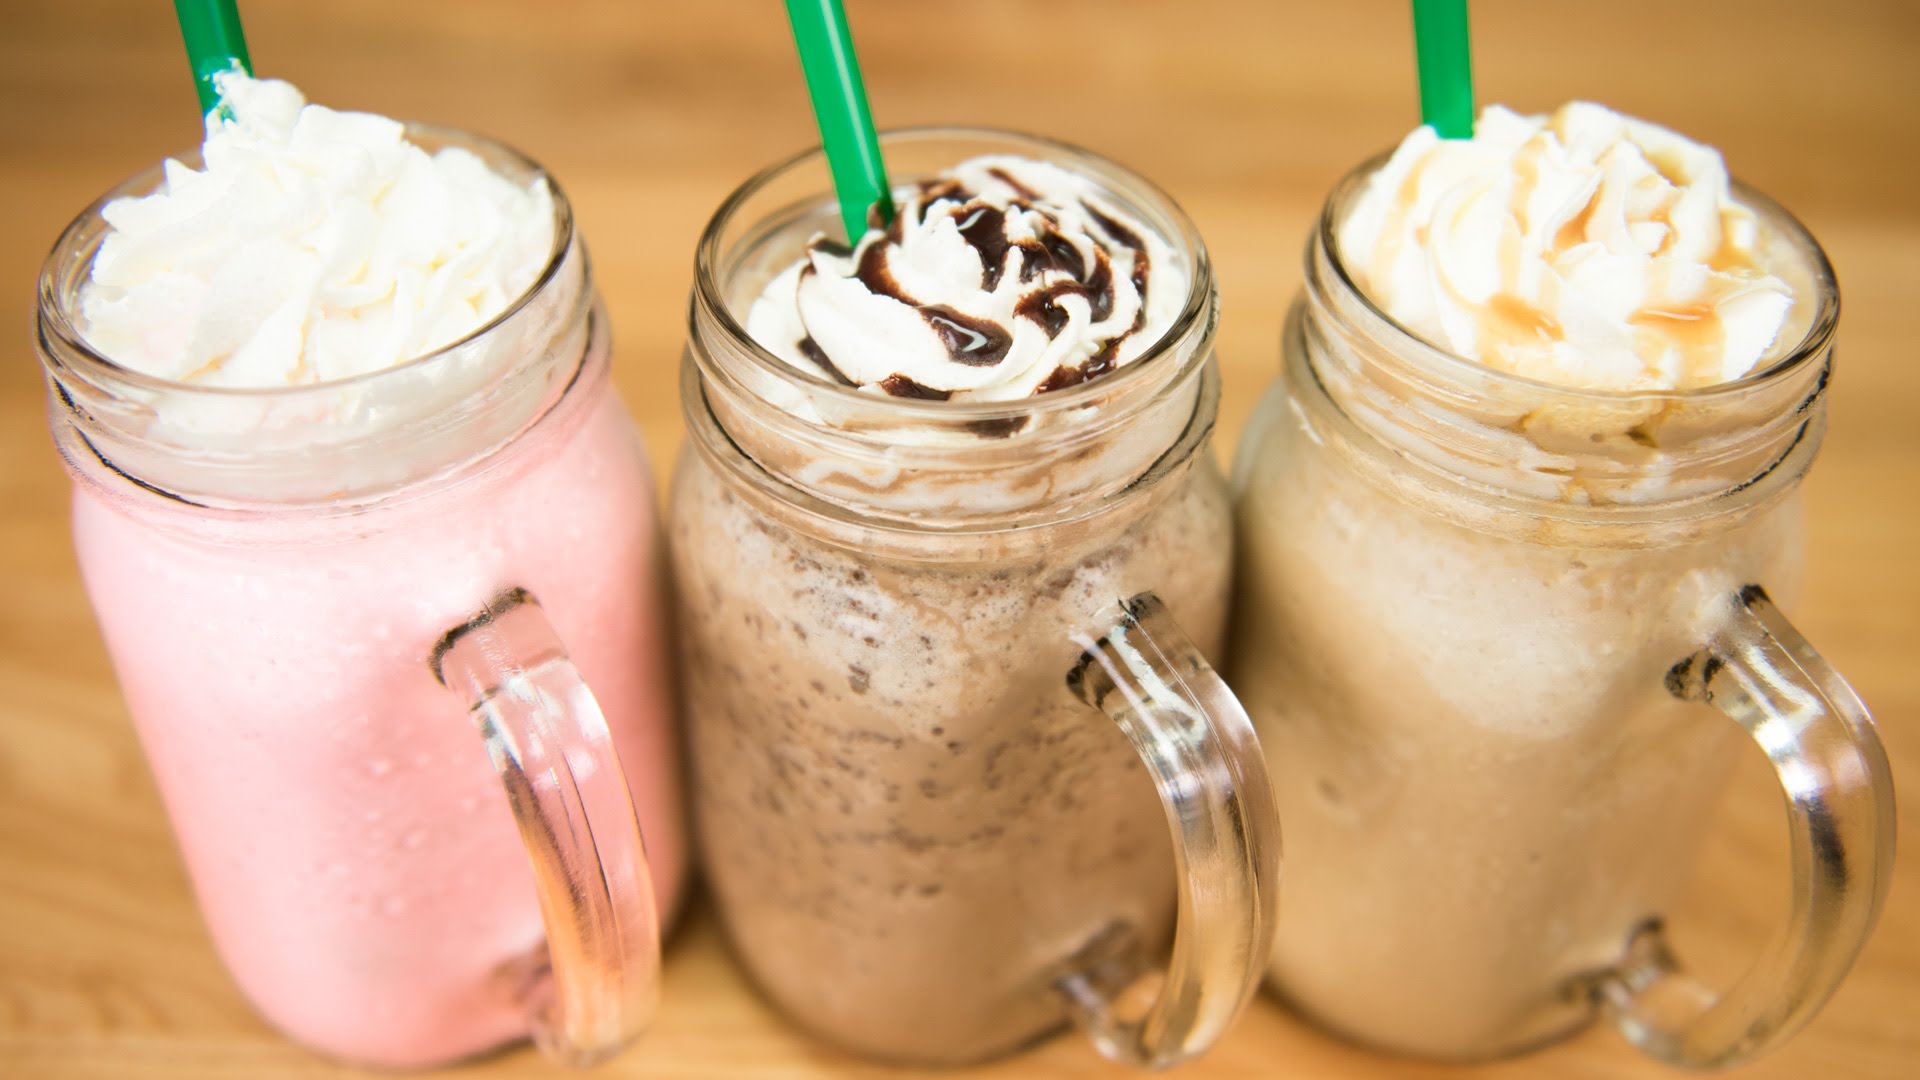 How To Make A Starbucks Frappuccino 3 Recipes